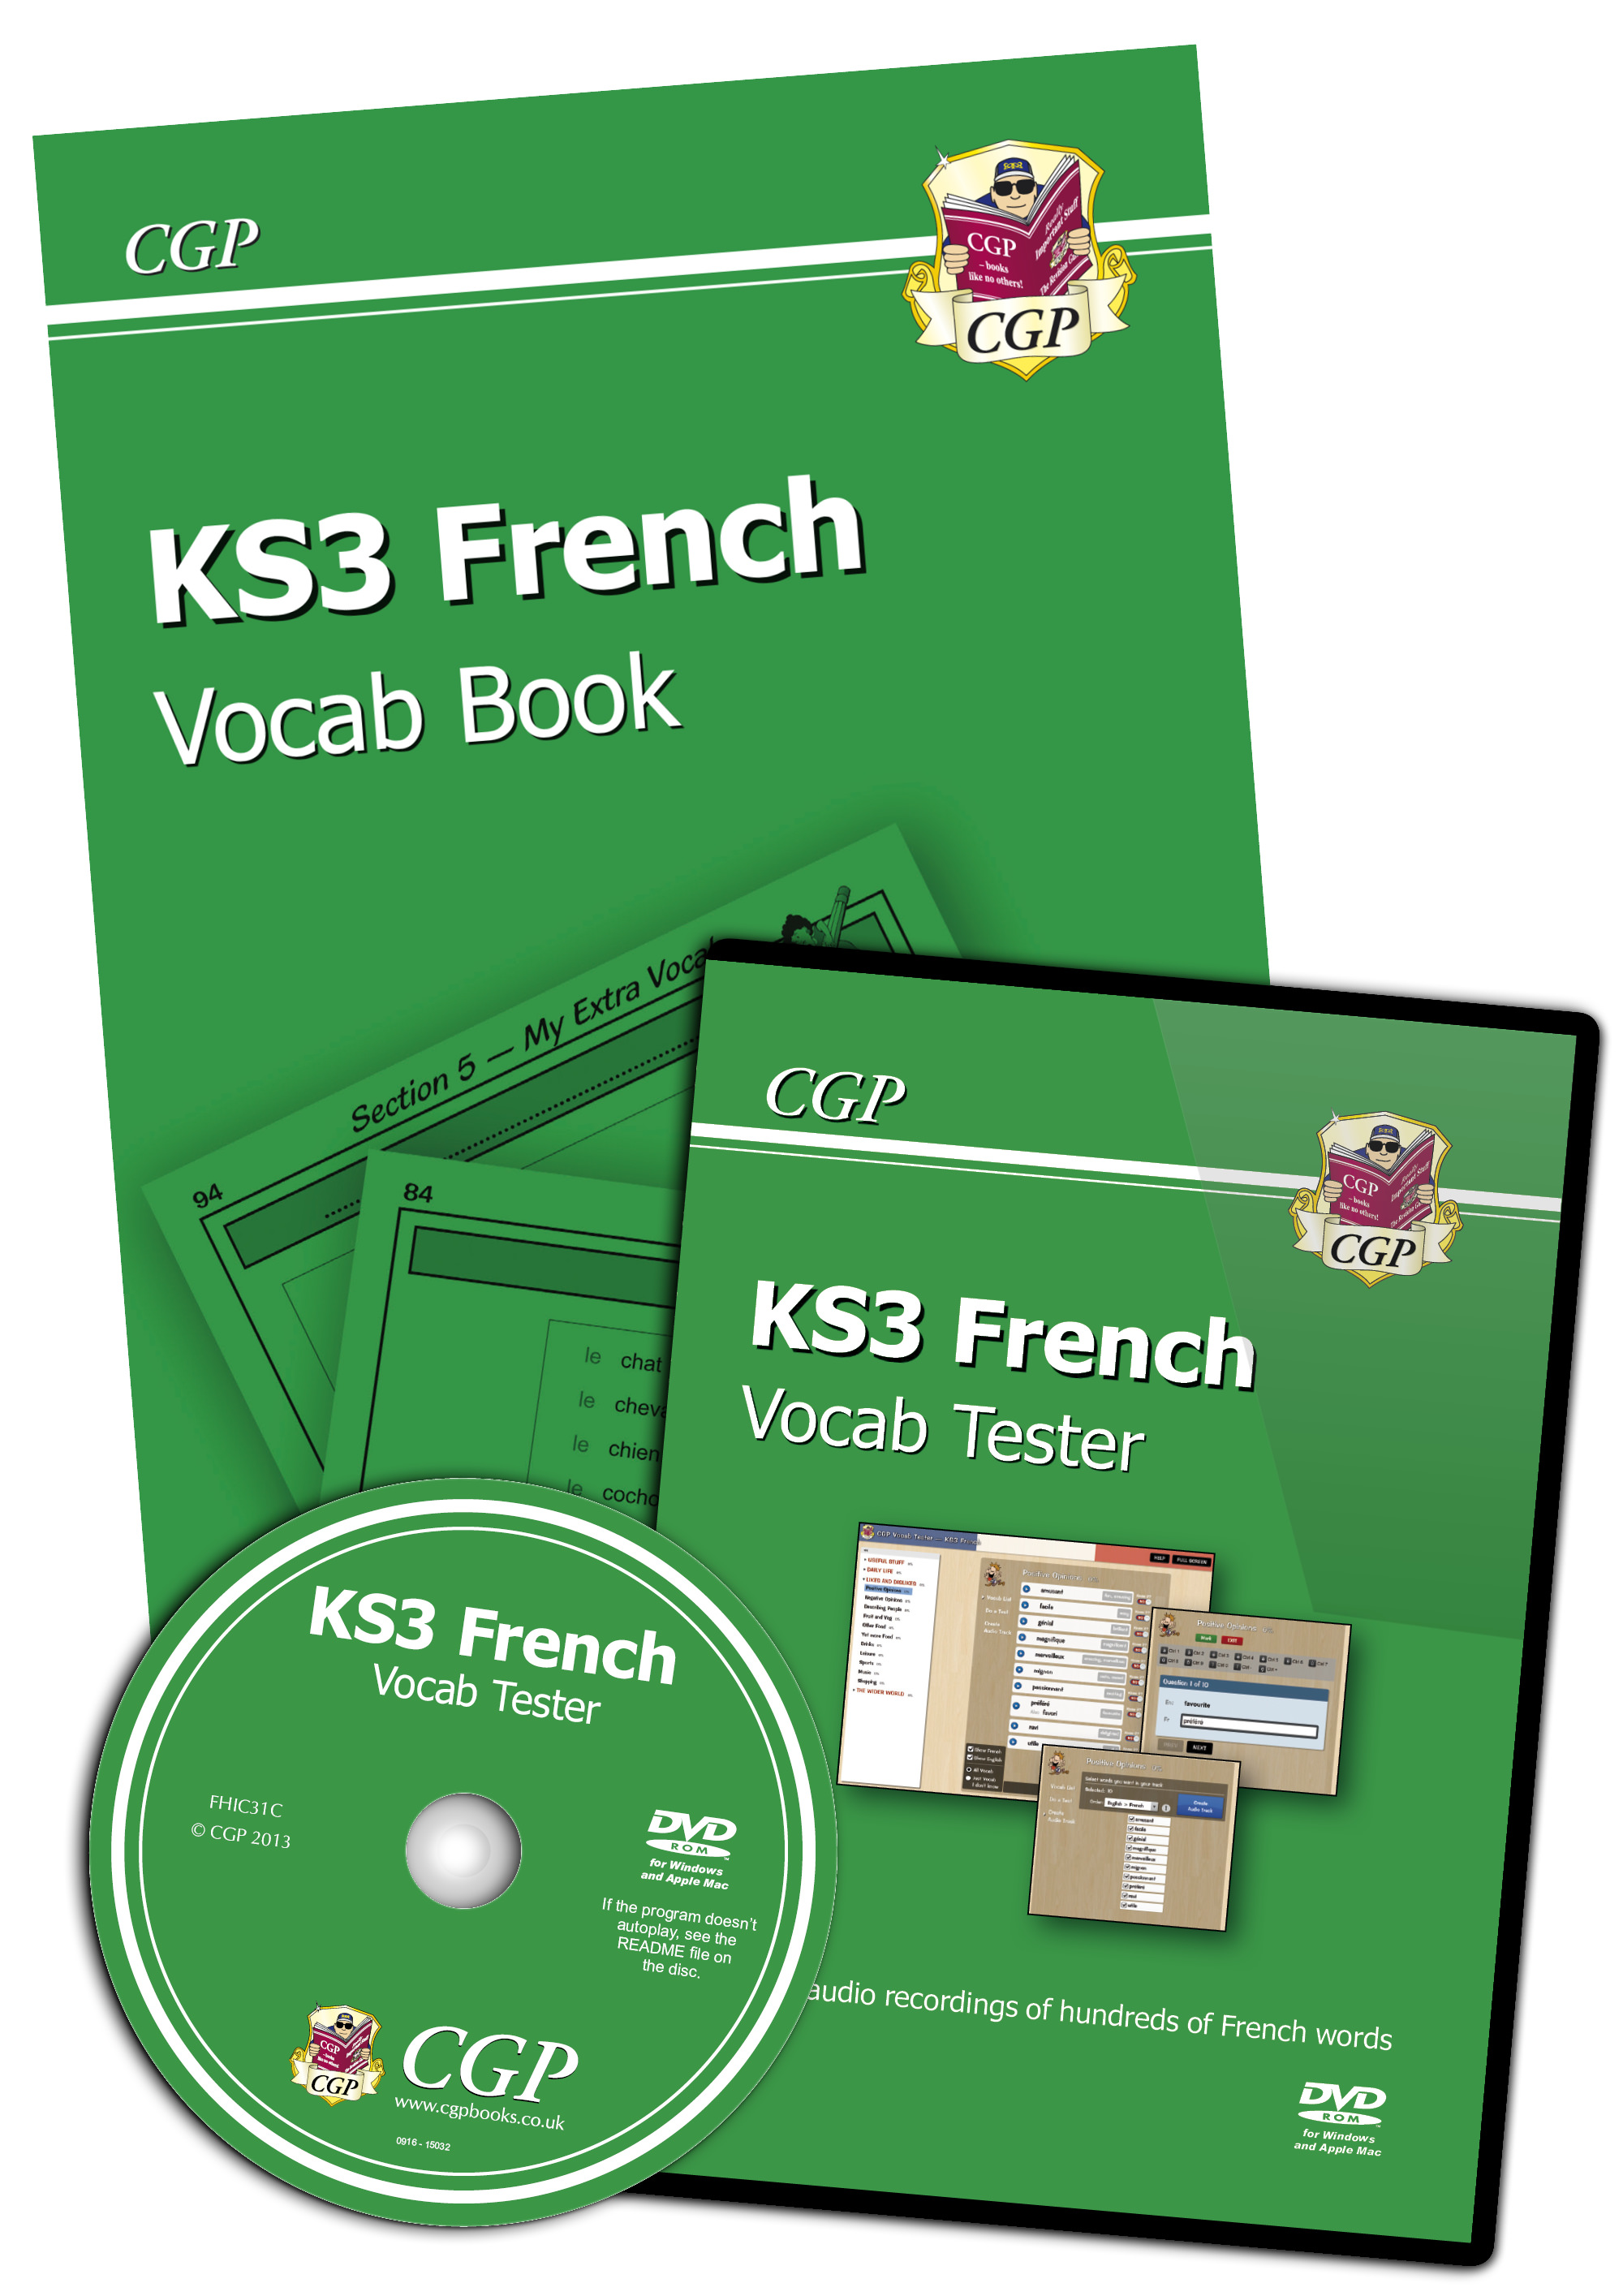 FHIC31 - KS3 French Interactive Vocab Tester - DVD-ROM and Vocab Book